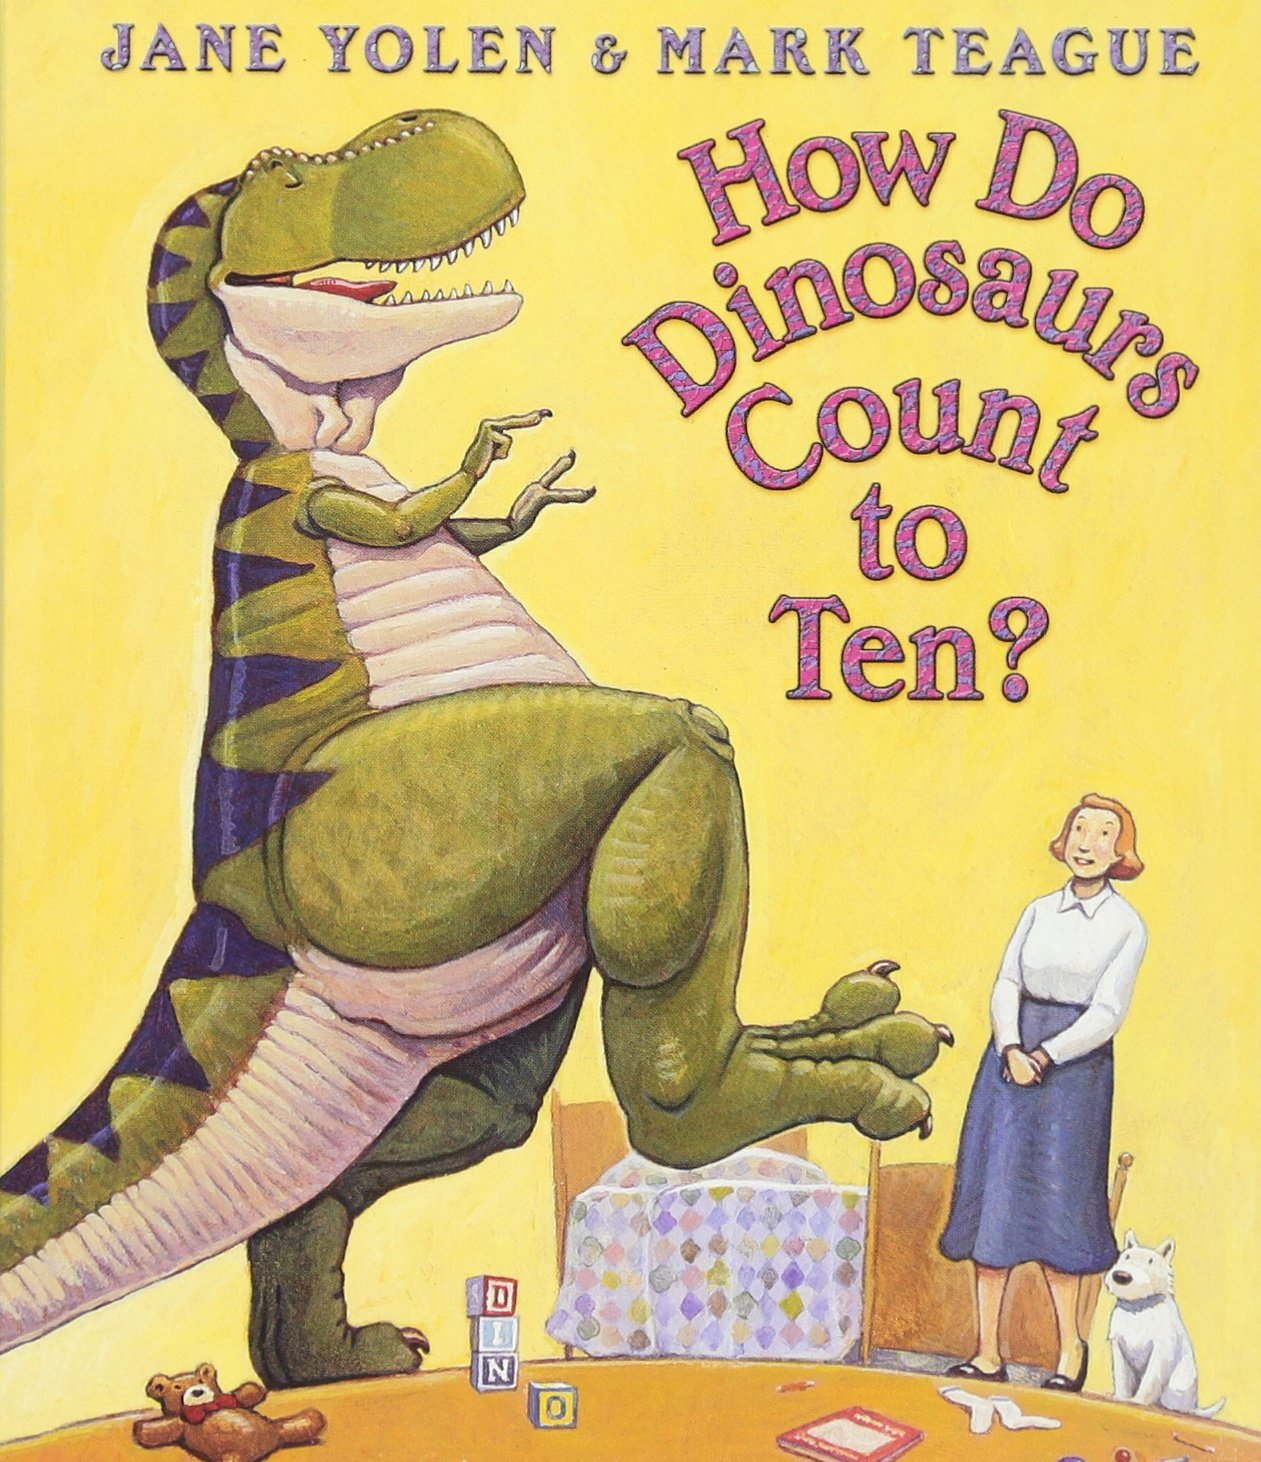 How do Dinosaurs Count to 10?